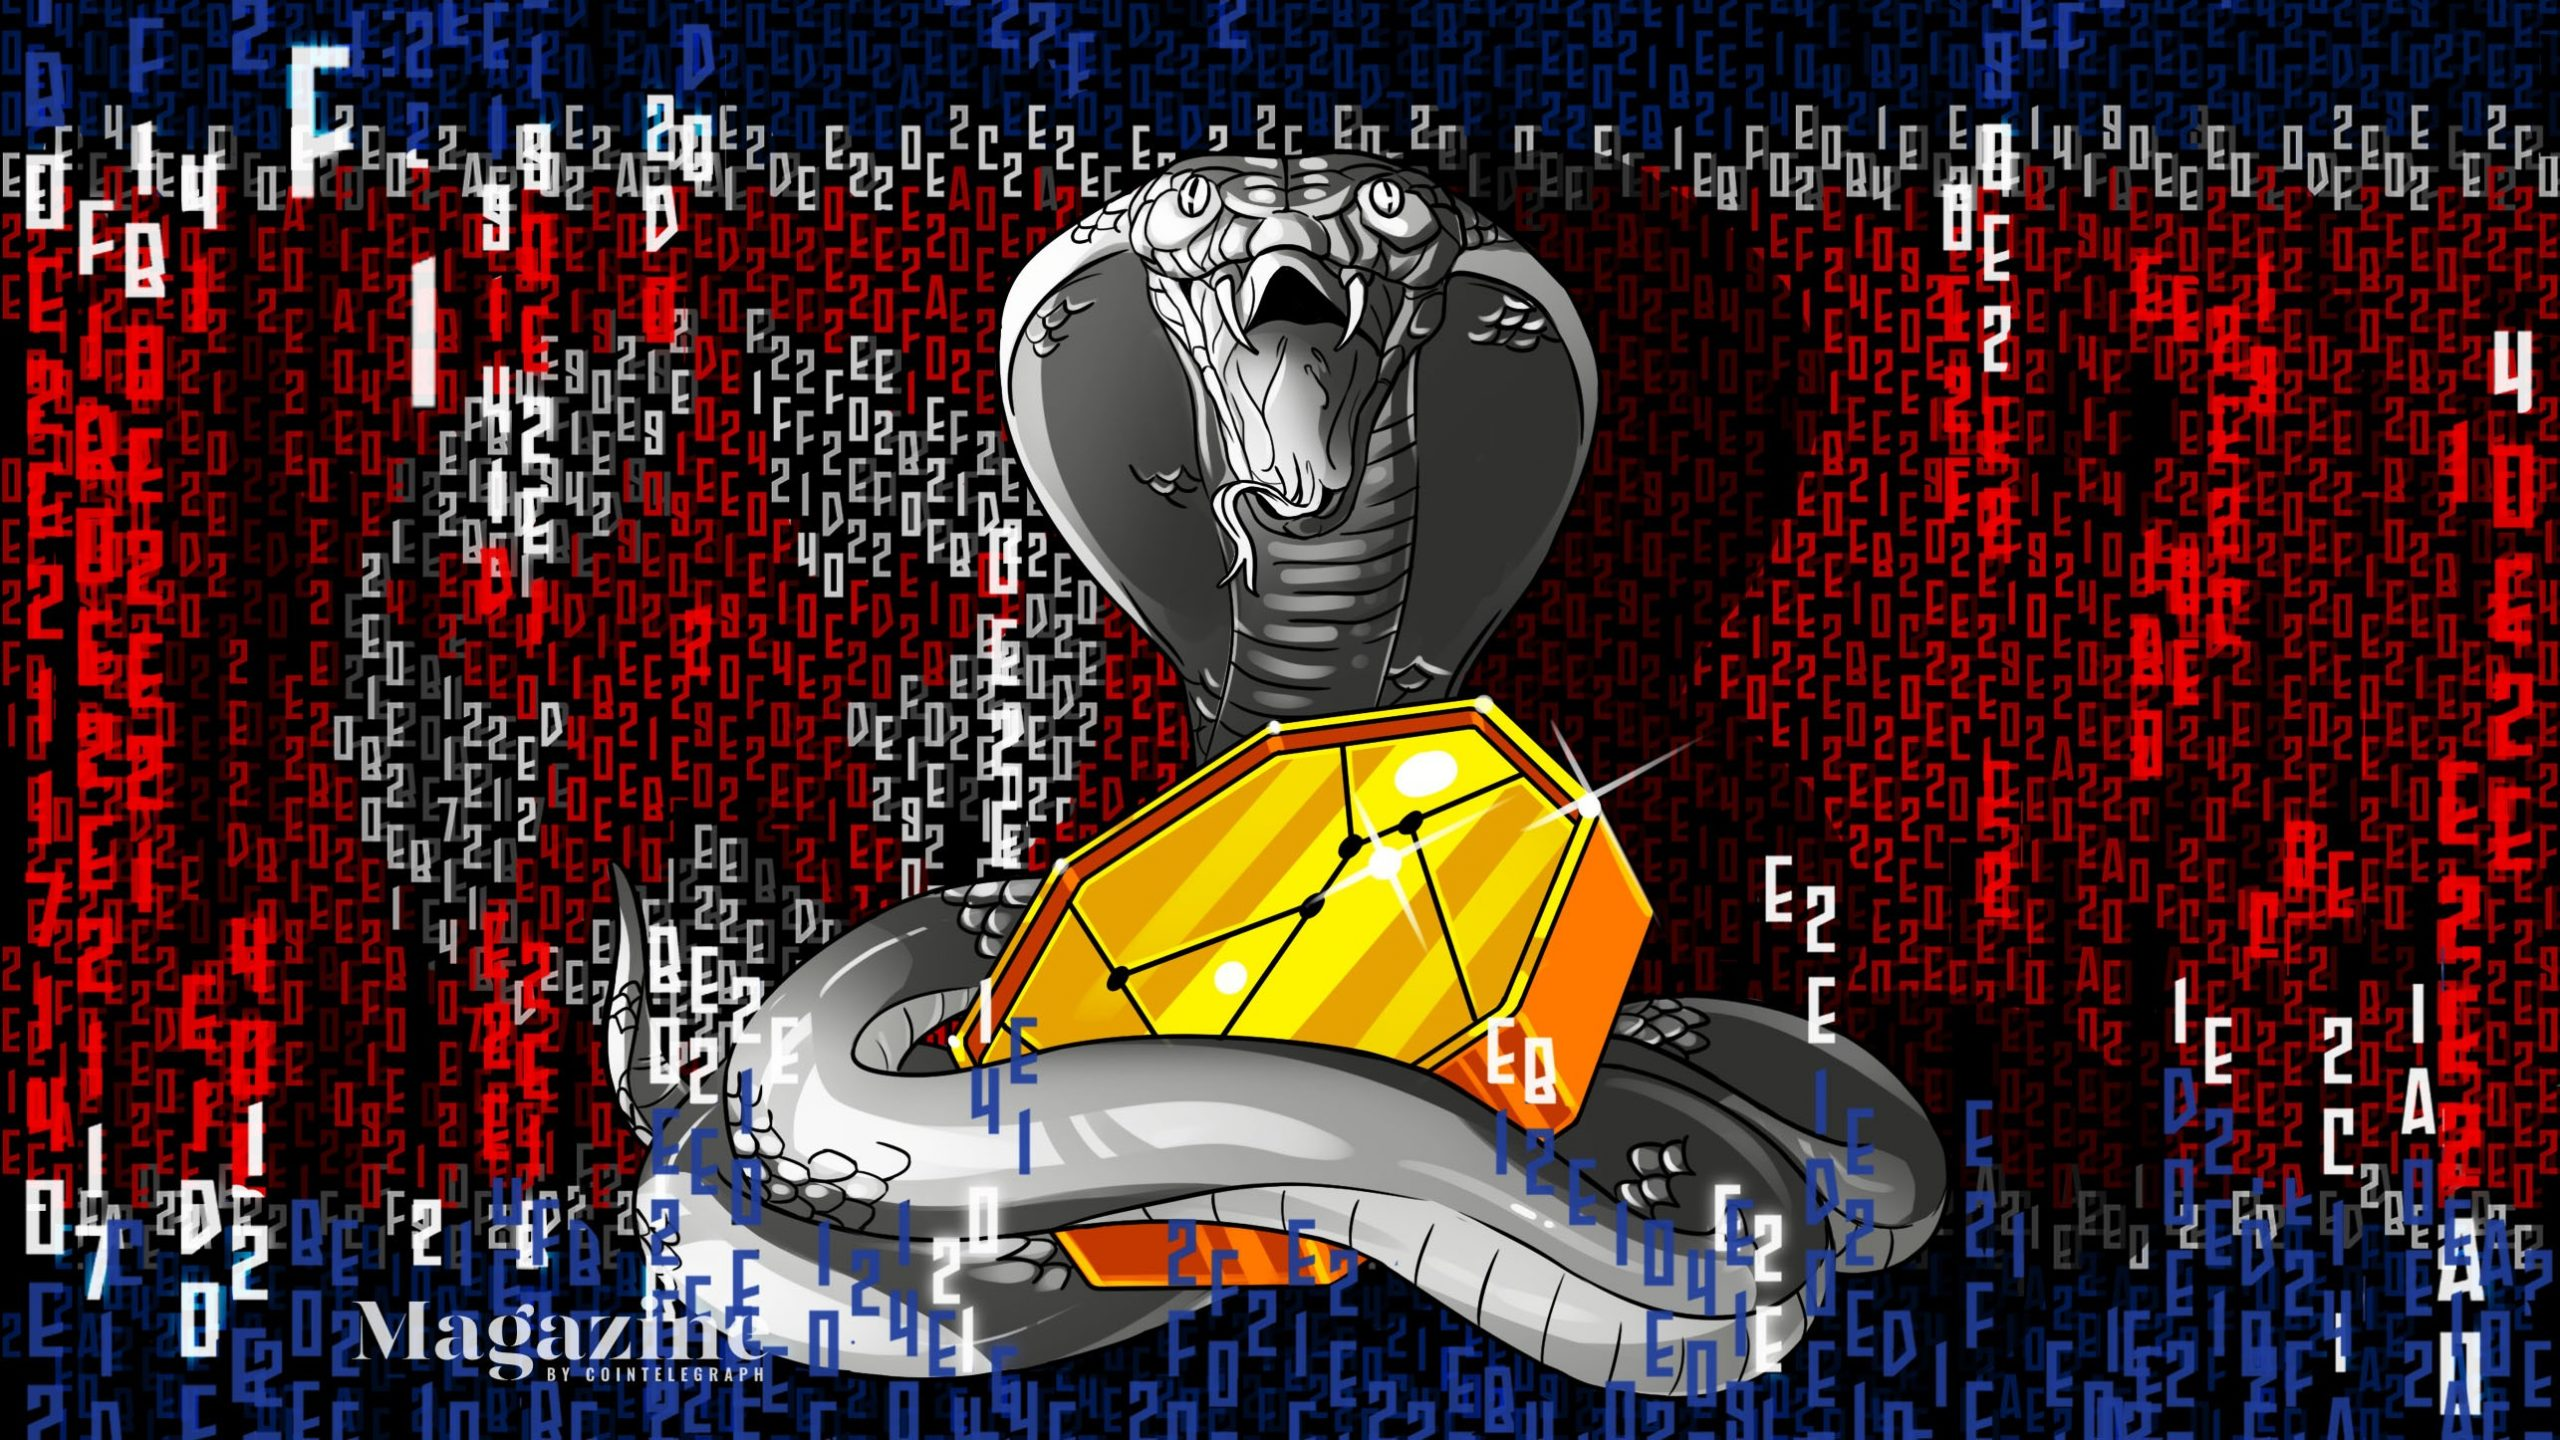 North Korean crypto hacking: Separating fact from fiction